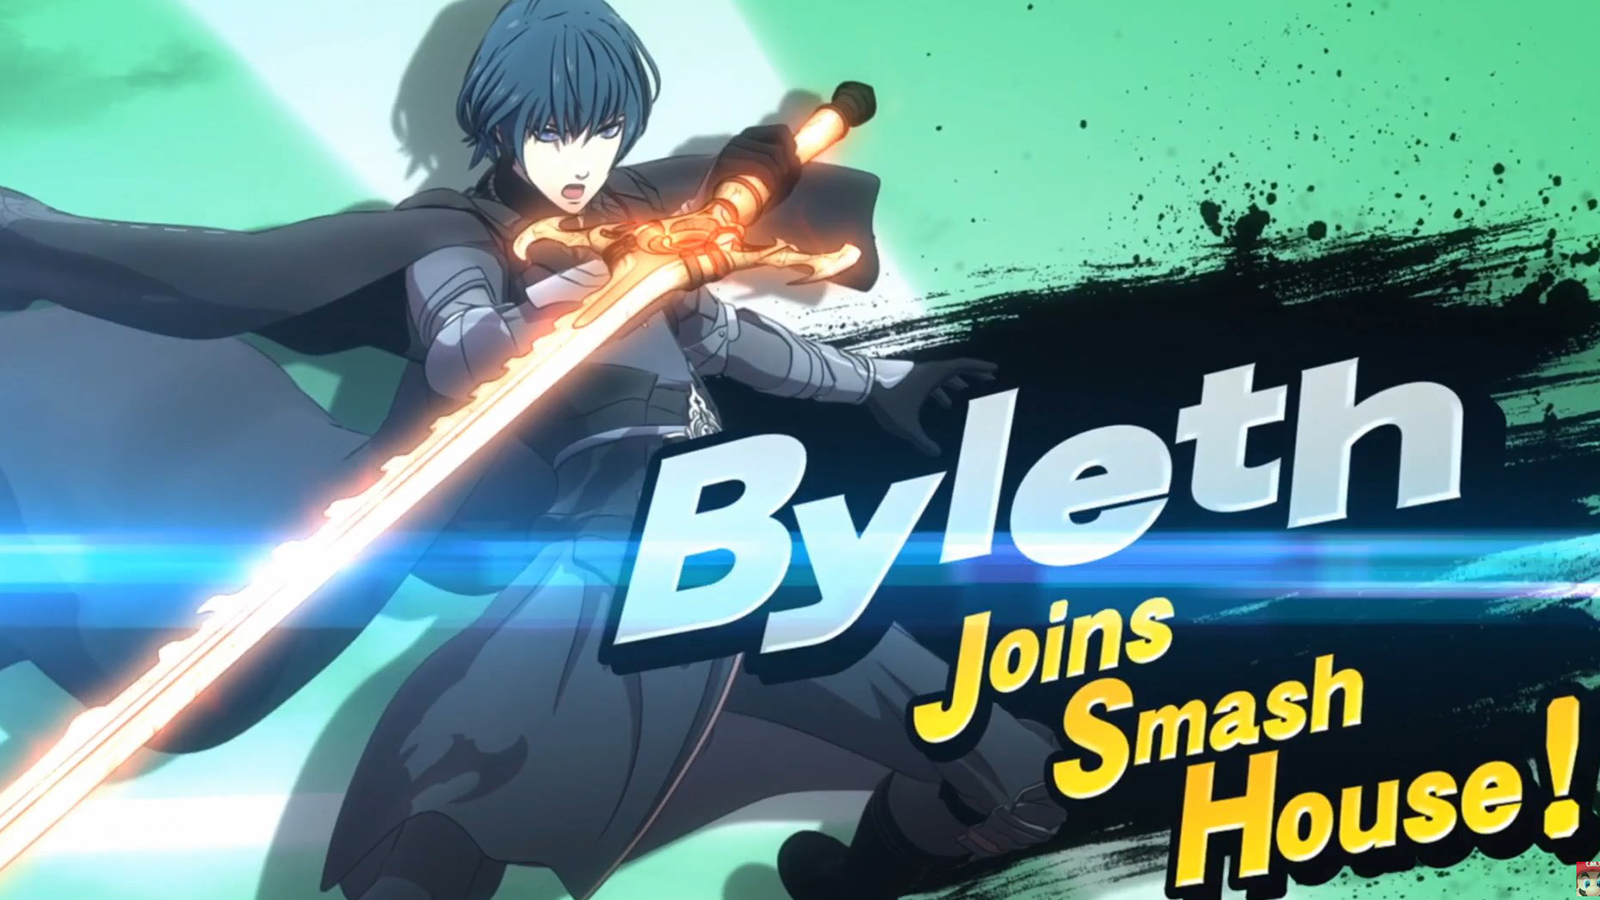 Fire Emblem's Byleth from the Super Smash Bros. Ultimate announcement.